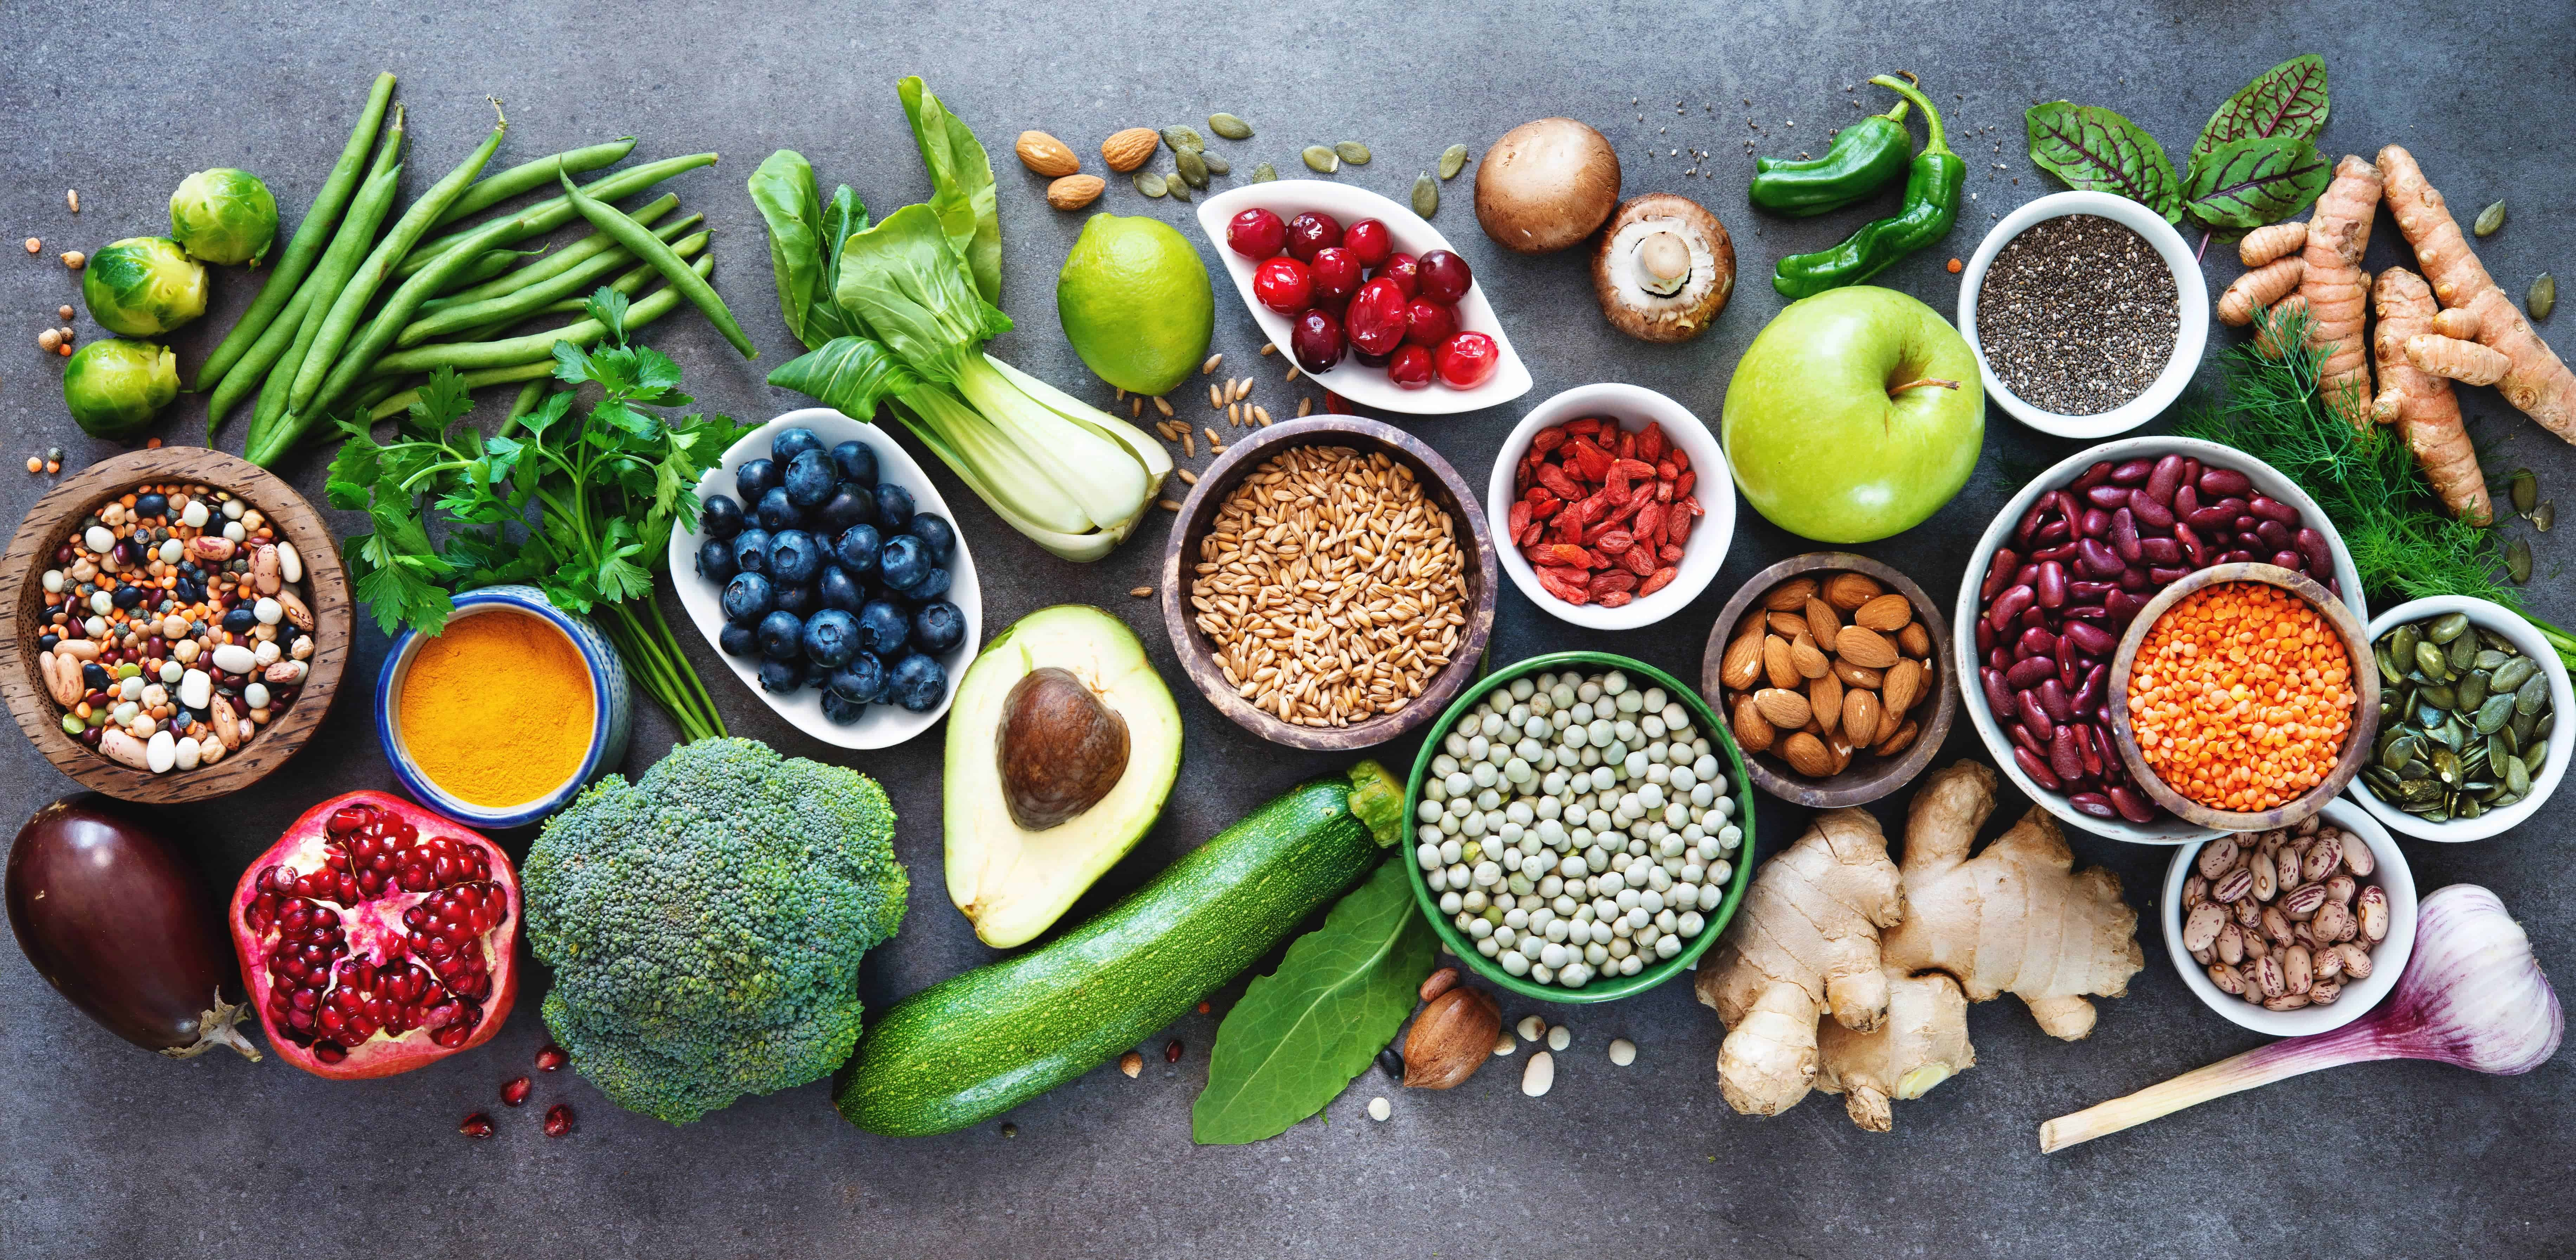 7 Healthy Eating Tips For People 65